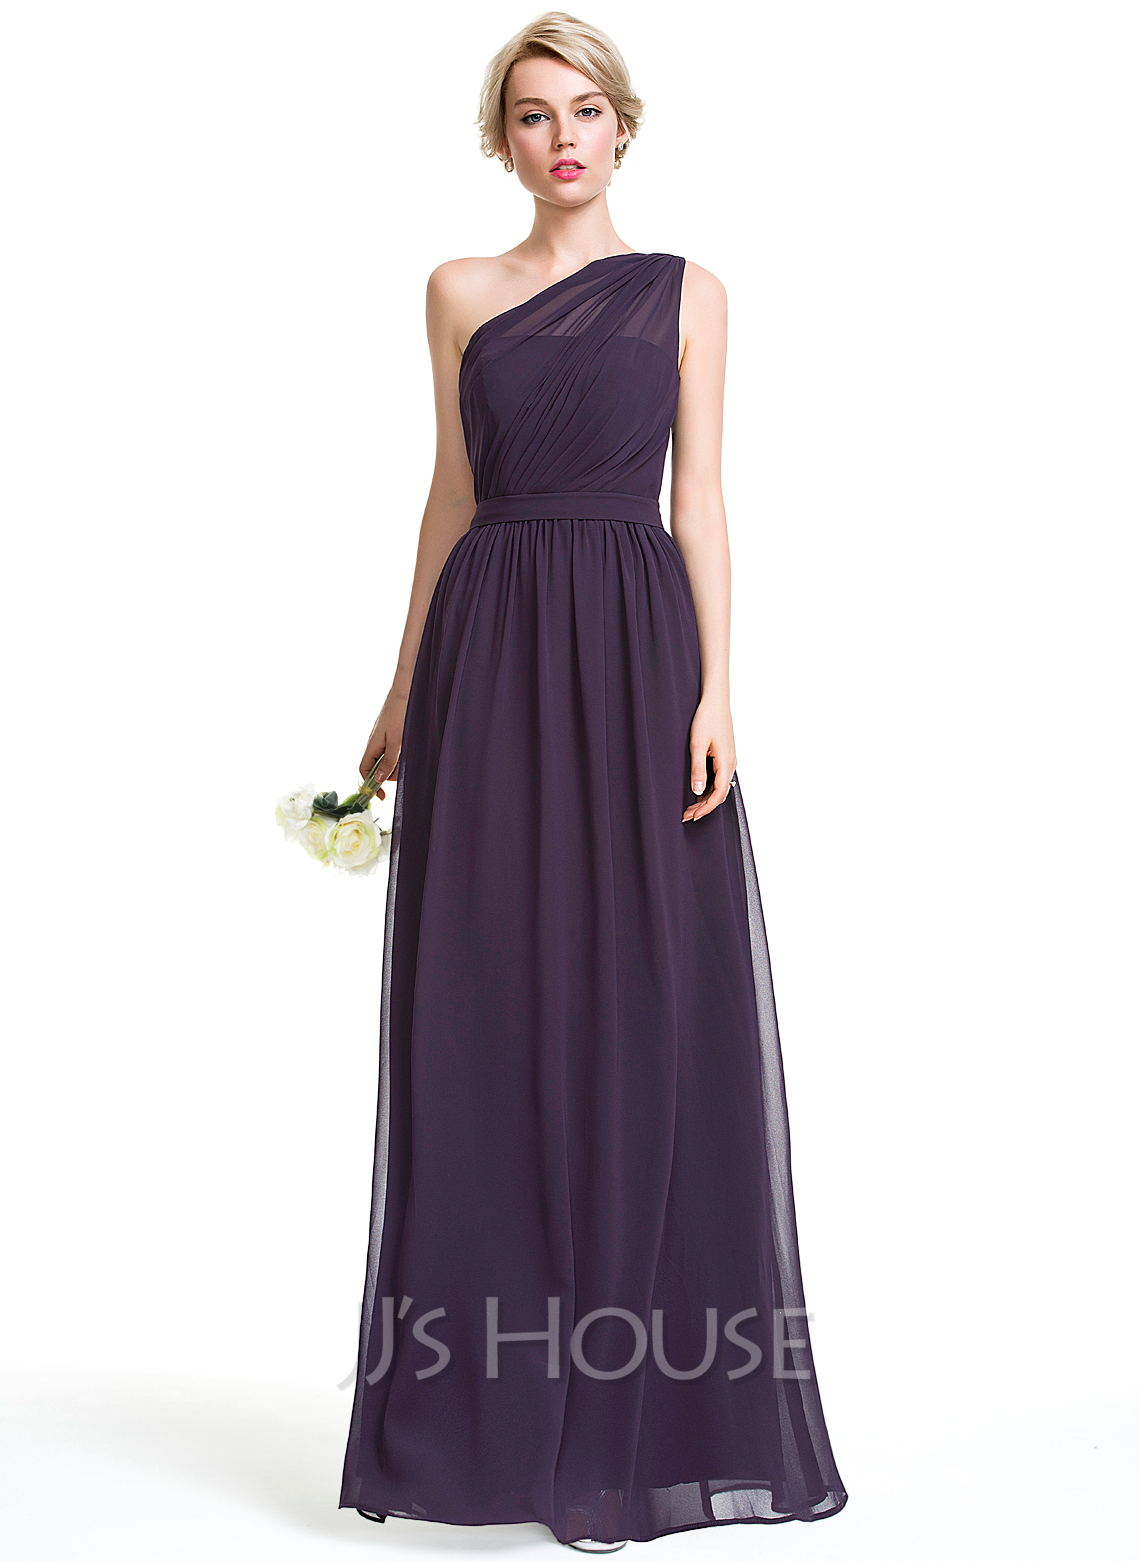 One-Shoulder Floor-Length Chiffon Bridesmaid Dress